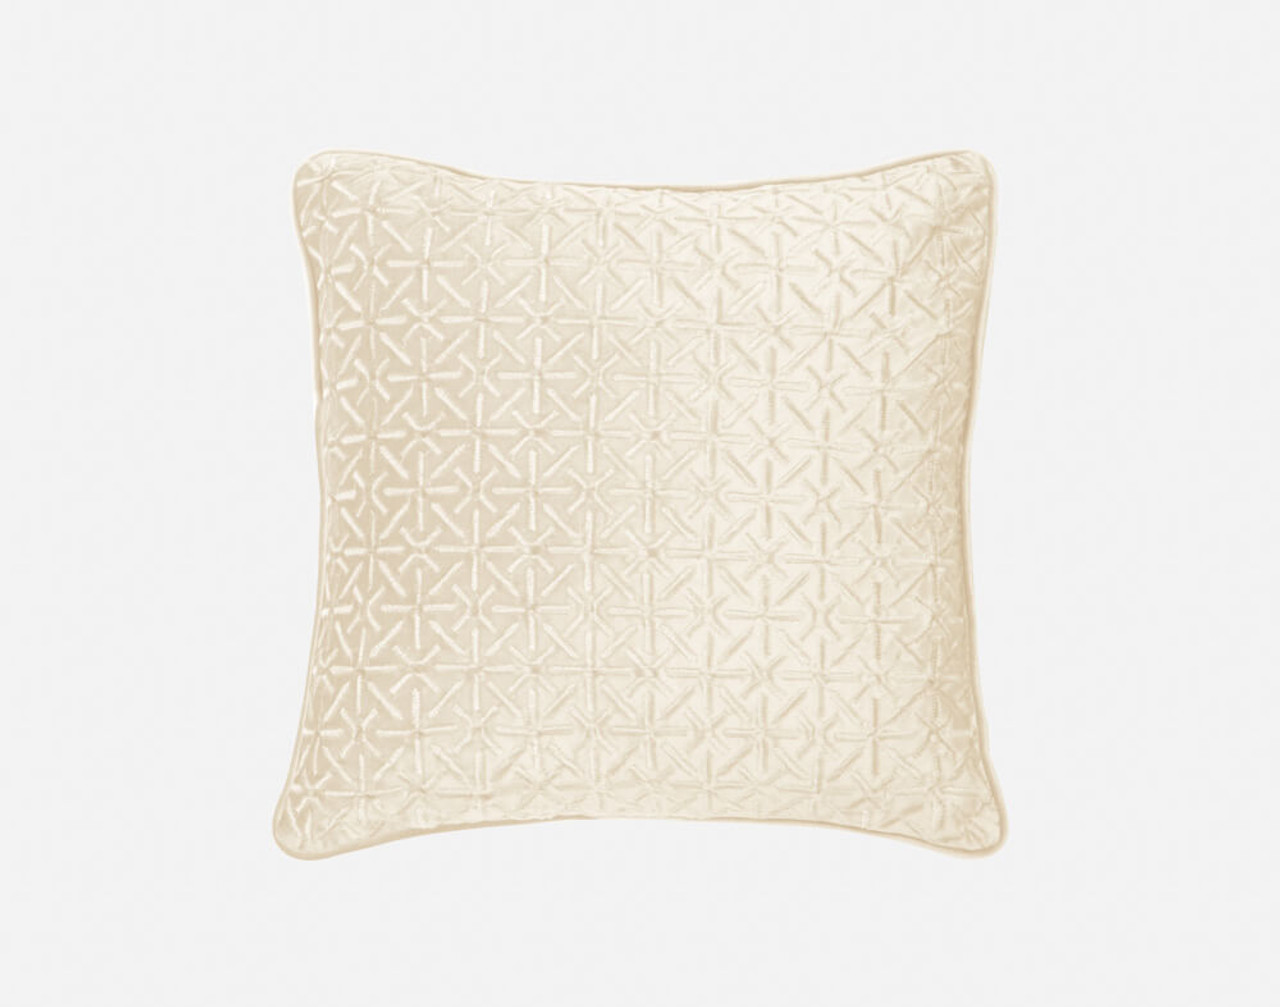 Front view of our Trellis Velvet Square Cushion Cover in Cloud.